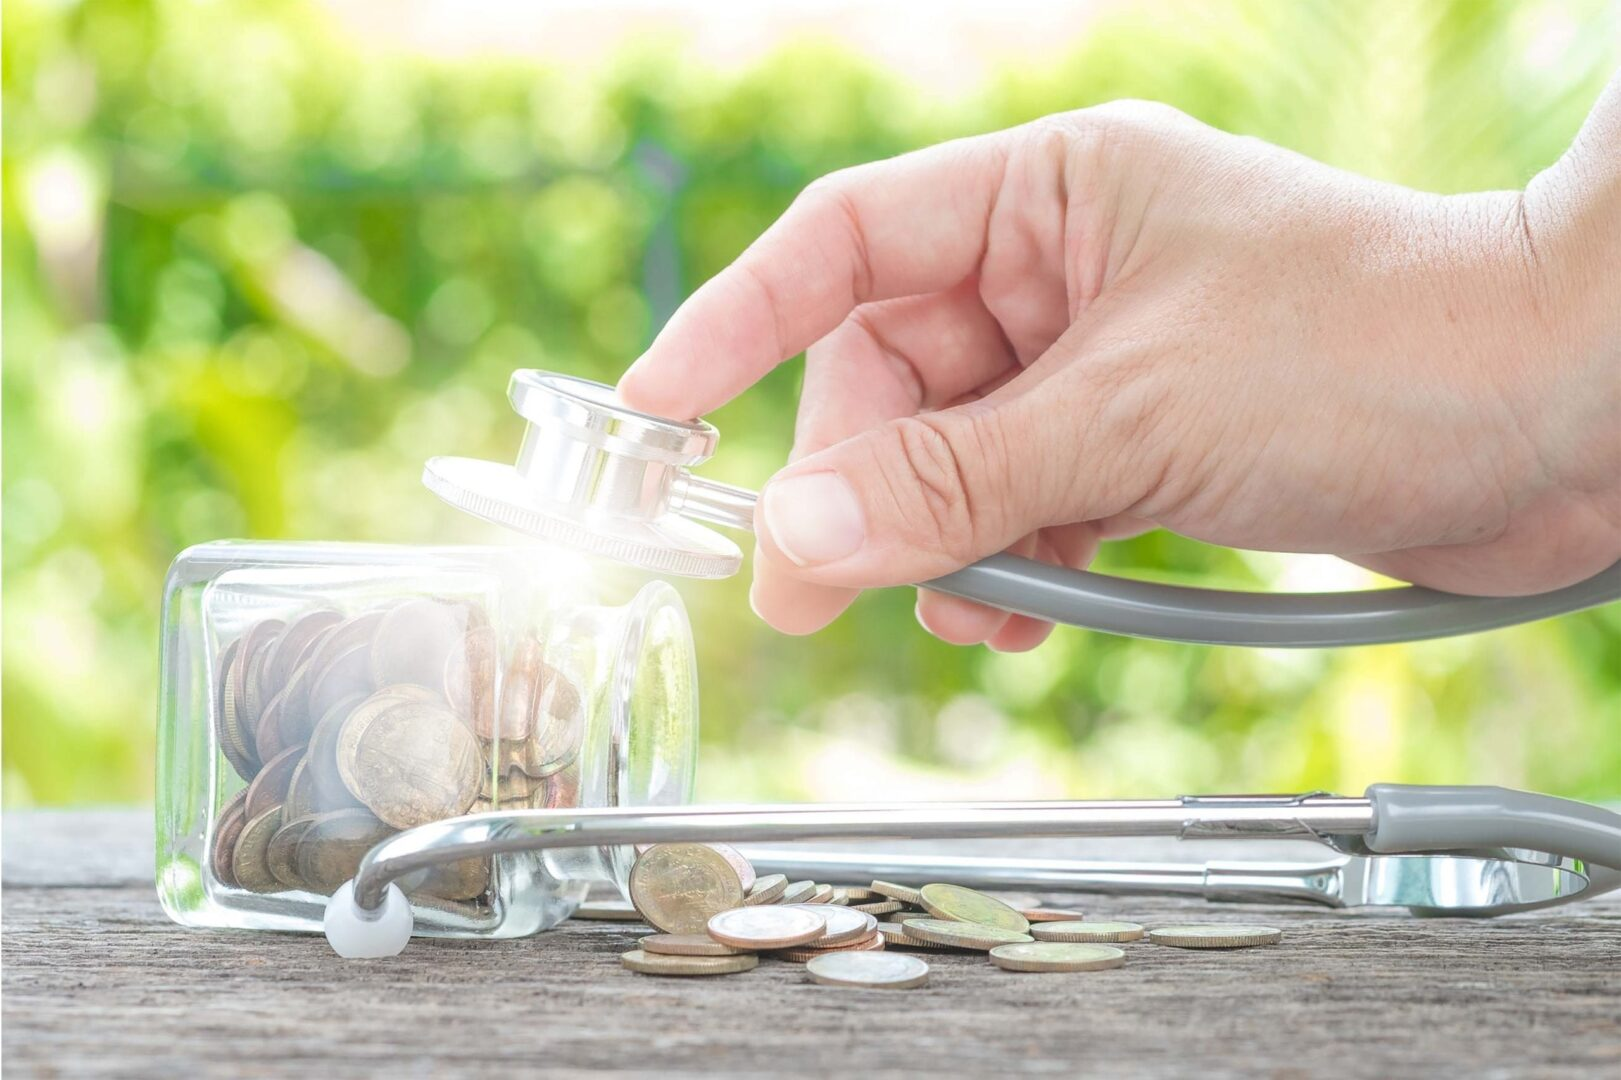 Second Opinion Service Mackay - Stethoscope against glass jar of coins to indicate checking financial health